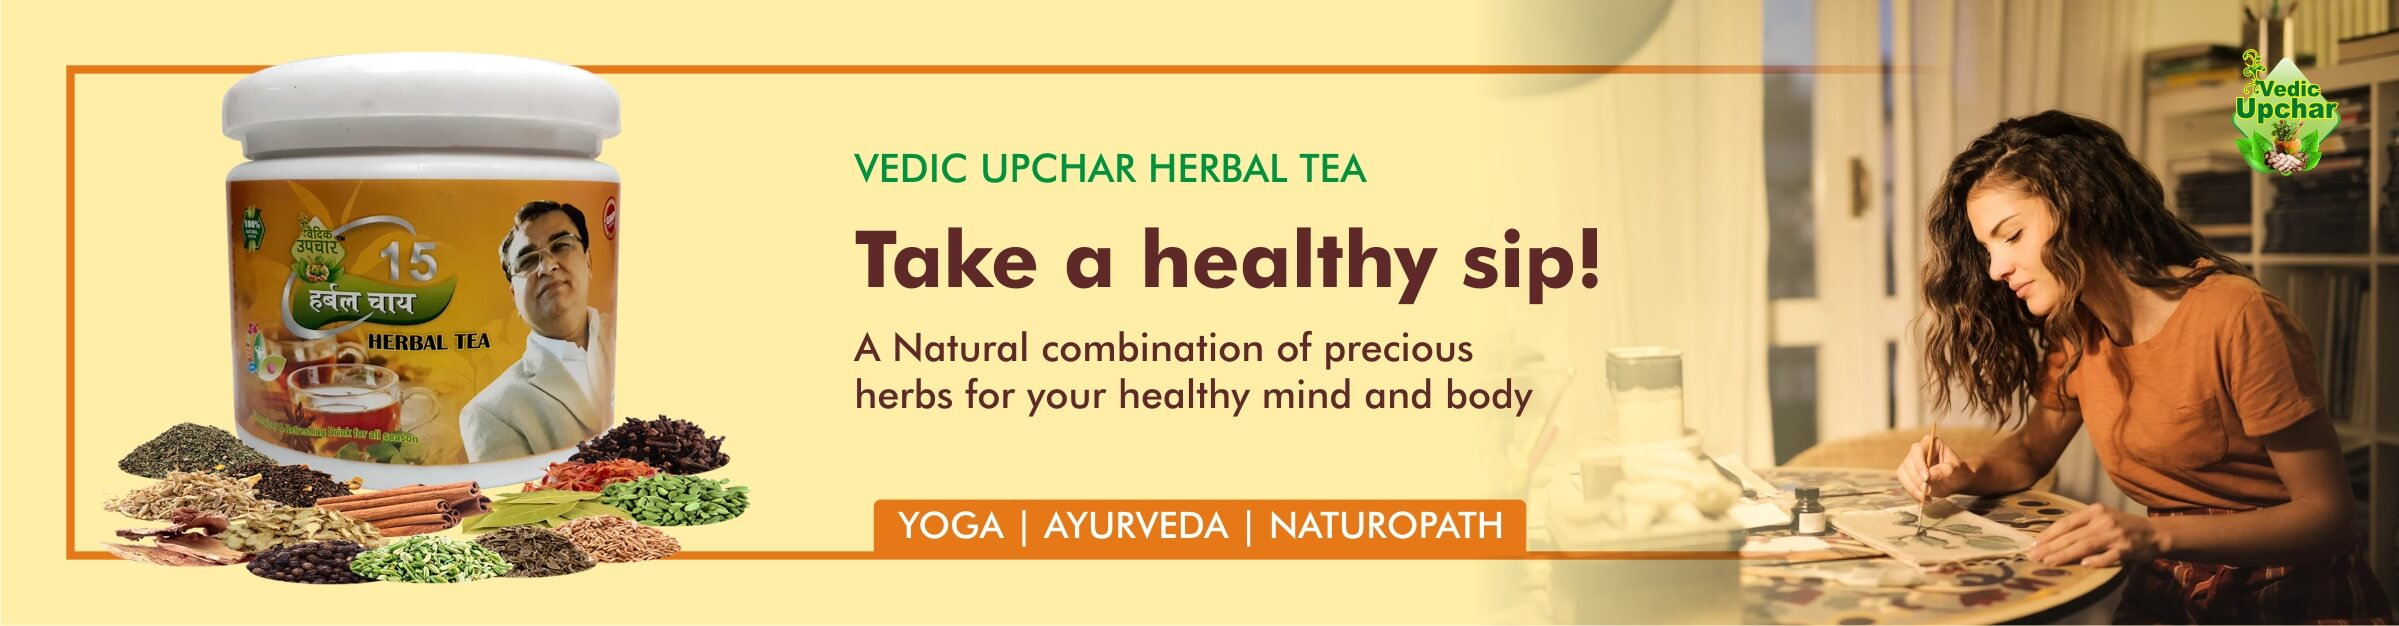 Vedic Upcahr herbal tea - 15